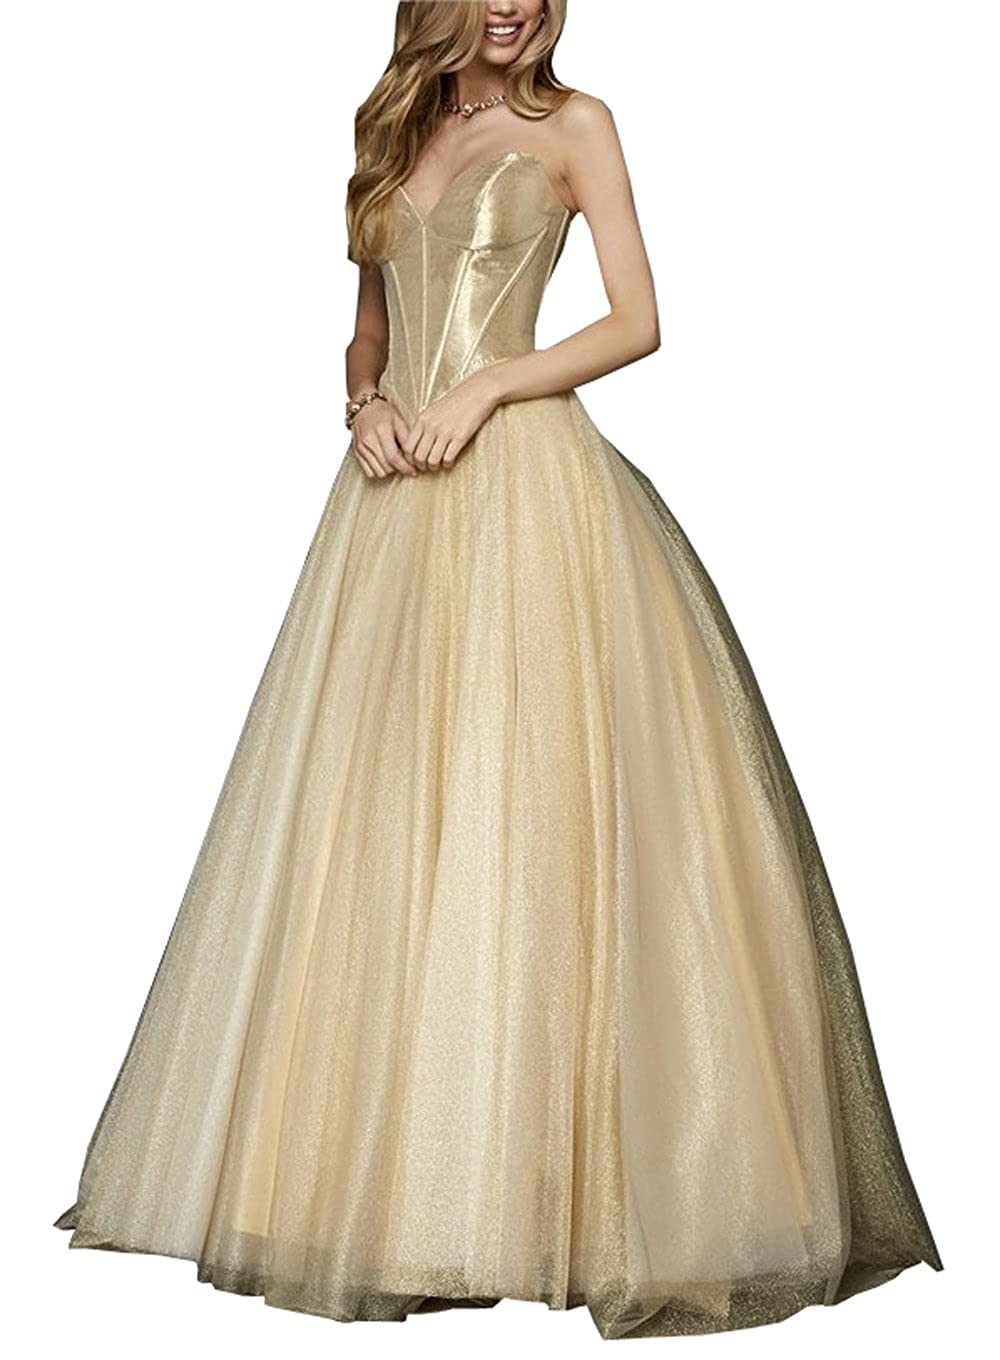 Simple Strapless Ball Gowns Prom Dresses Gold Tulle Open Back Formal